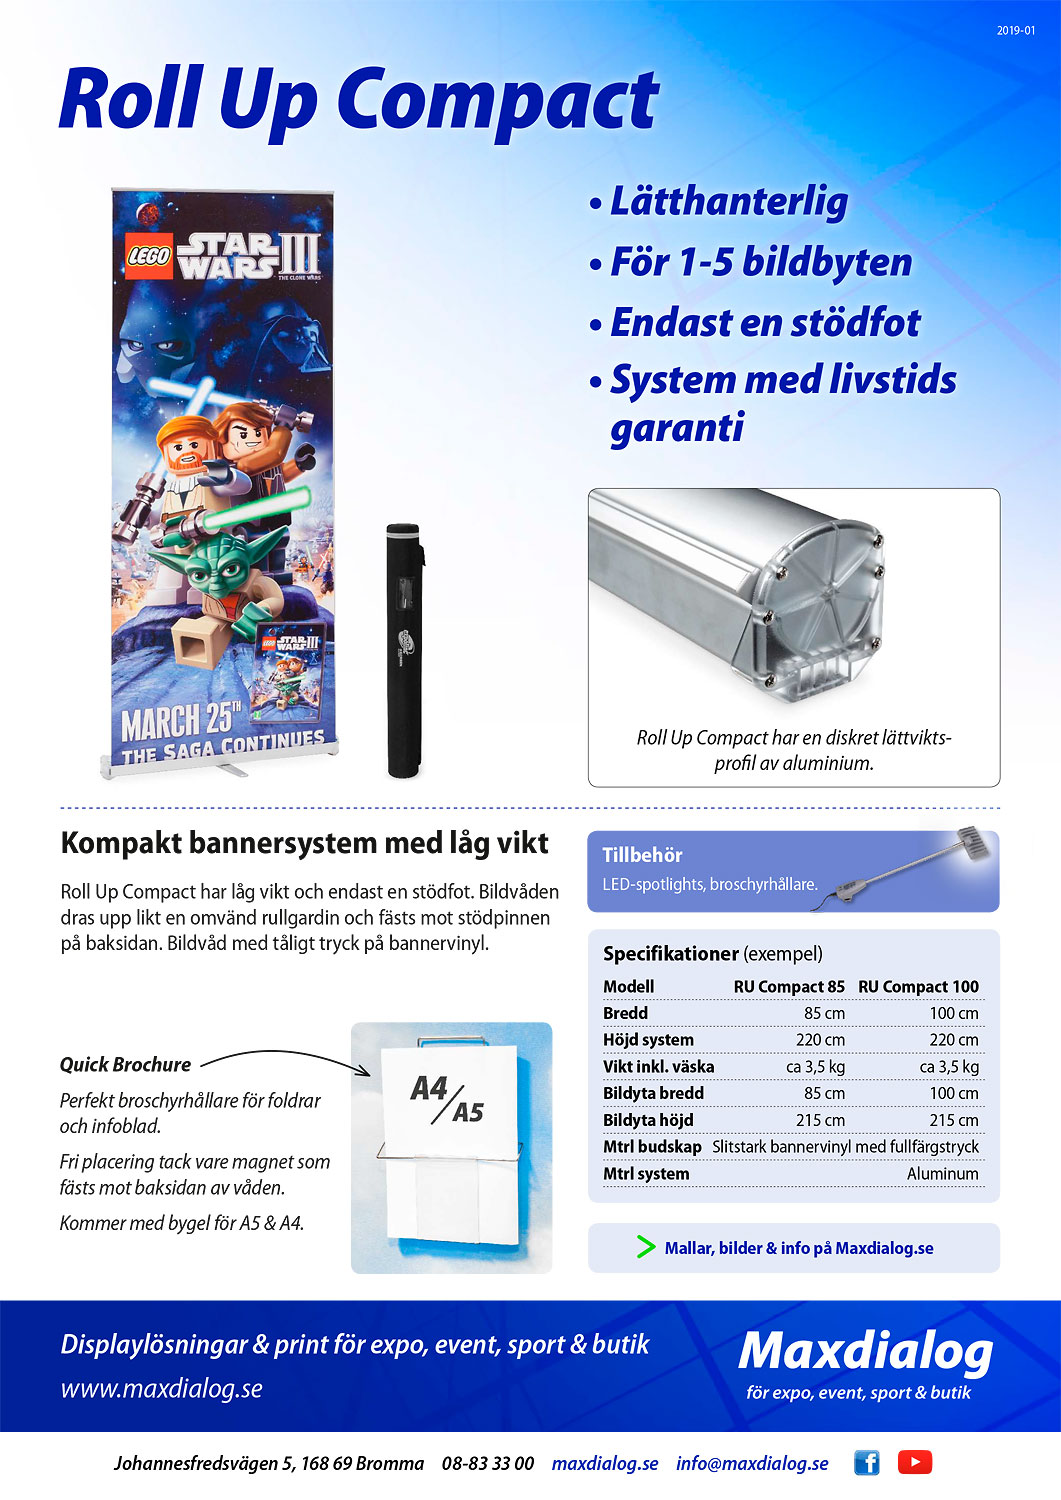 Roll Up Compact produktblad